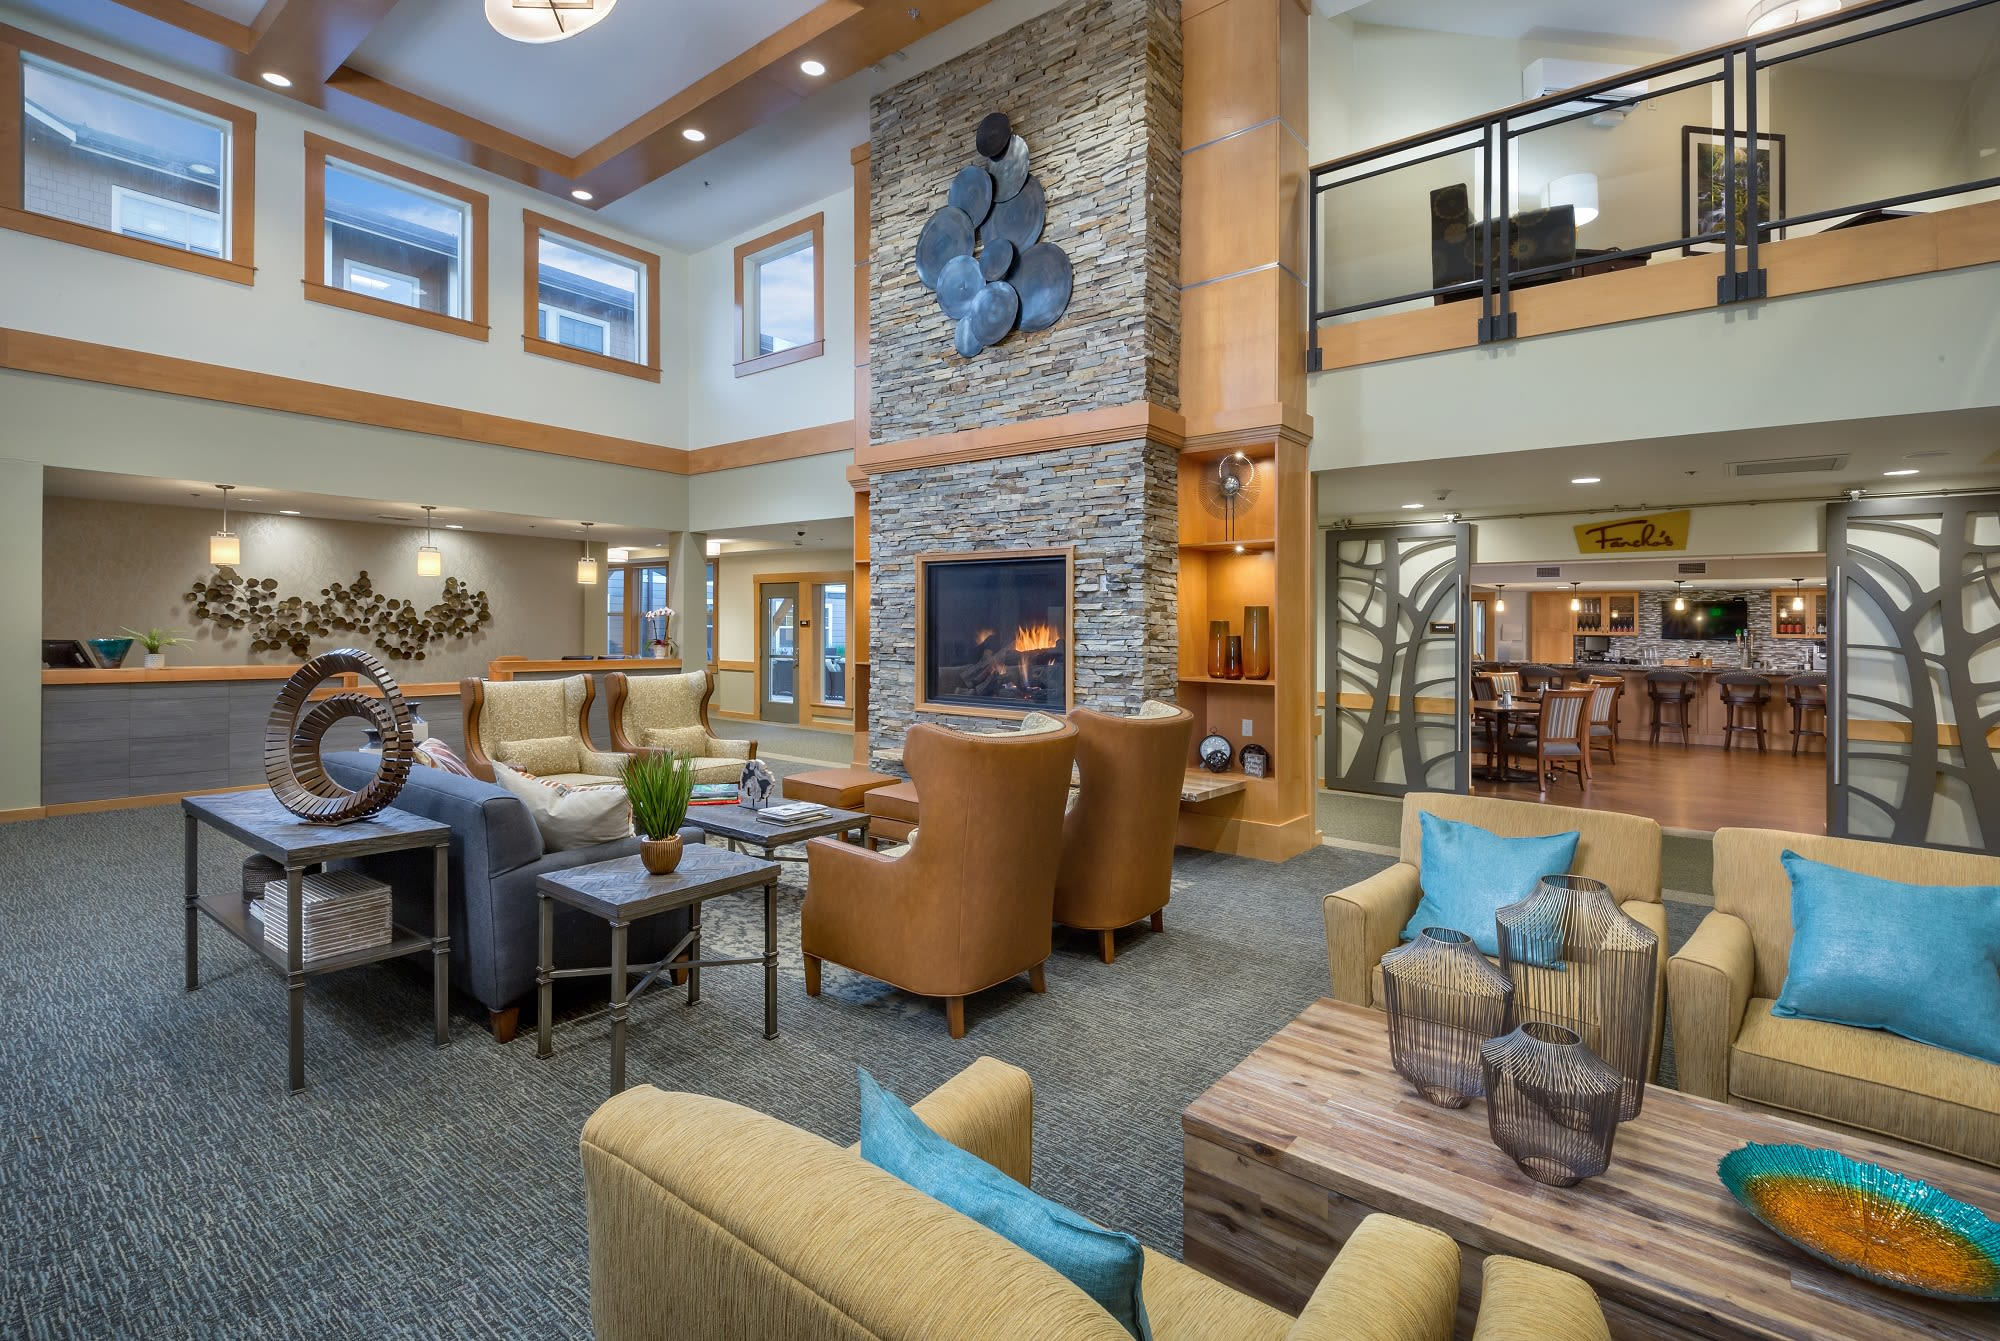 Image of the lobby at The Springs at Greer Gardens